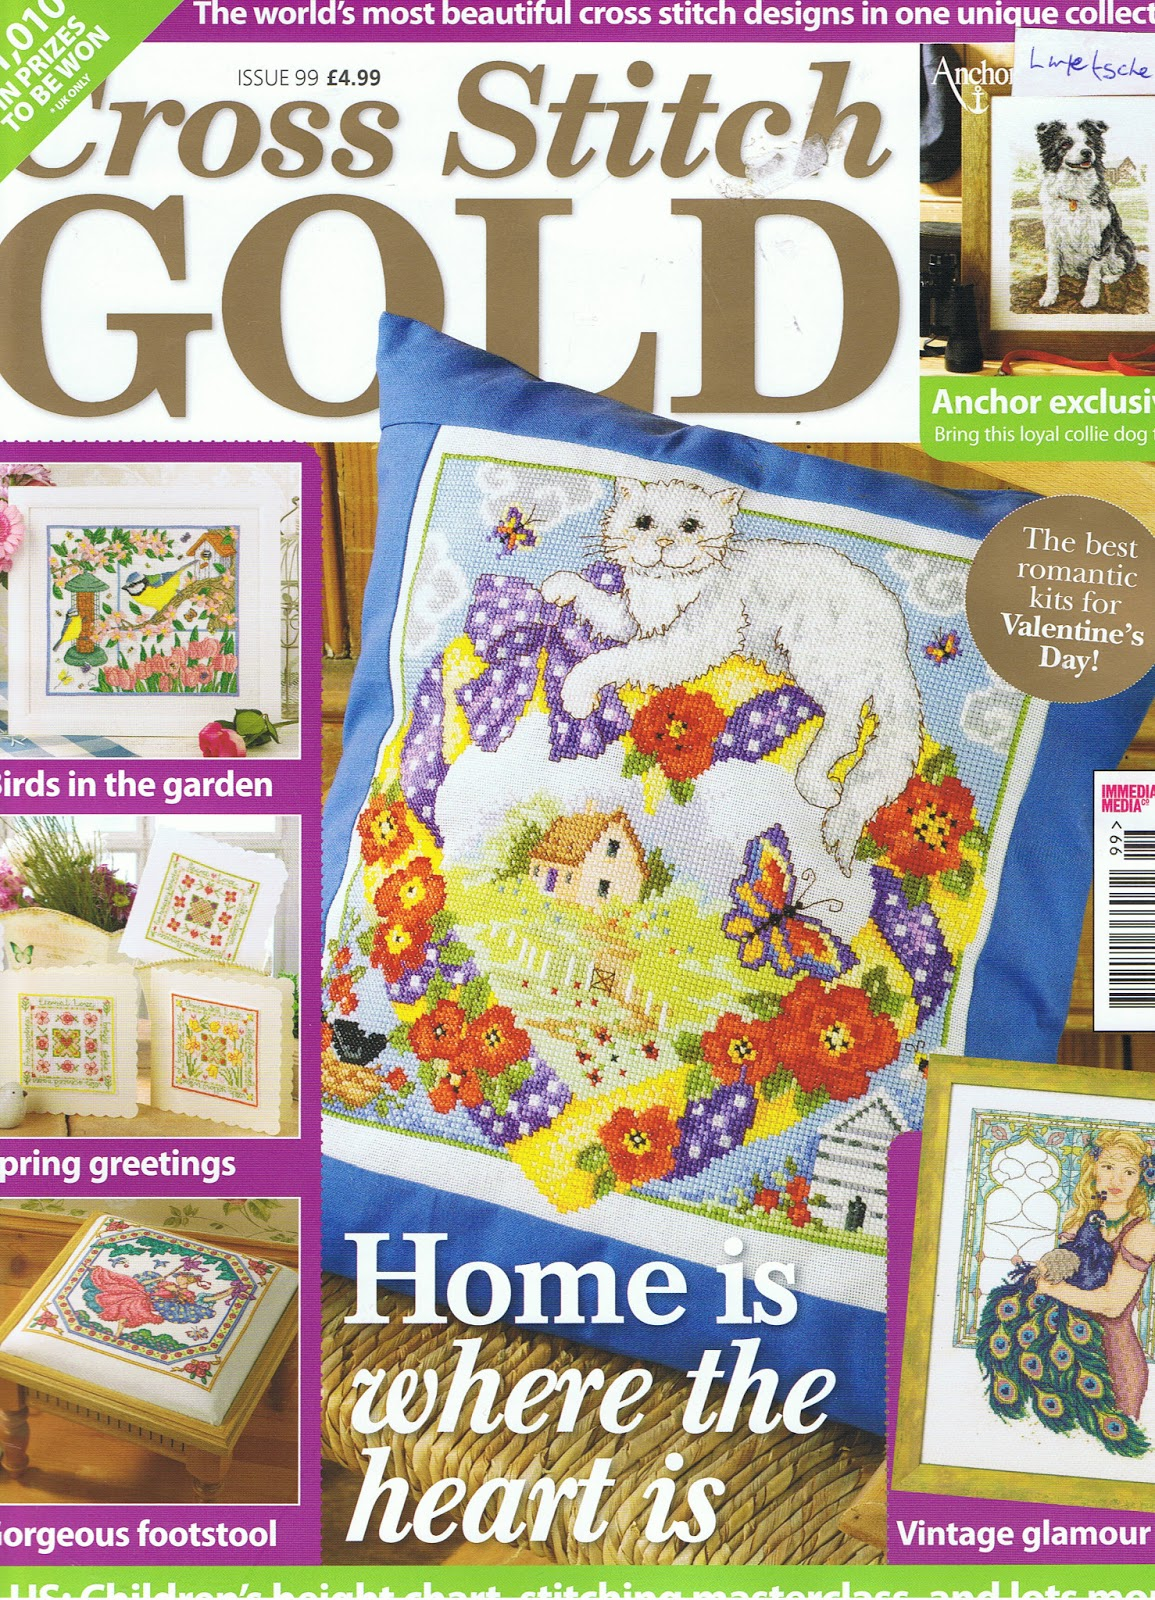 Cross Stitch Gold Issue #39 December 2013 Partridge In A Pear Tree